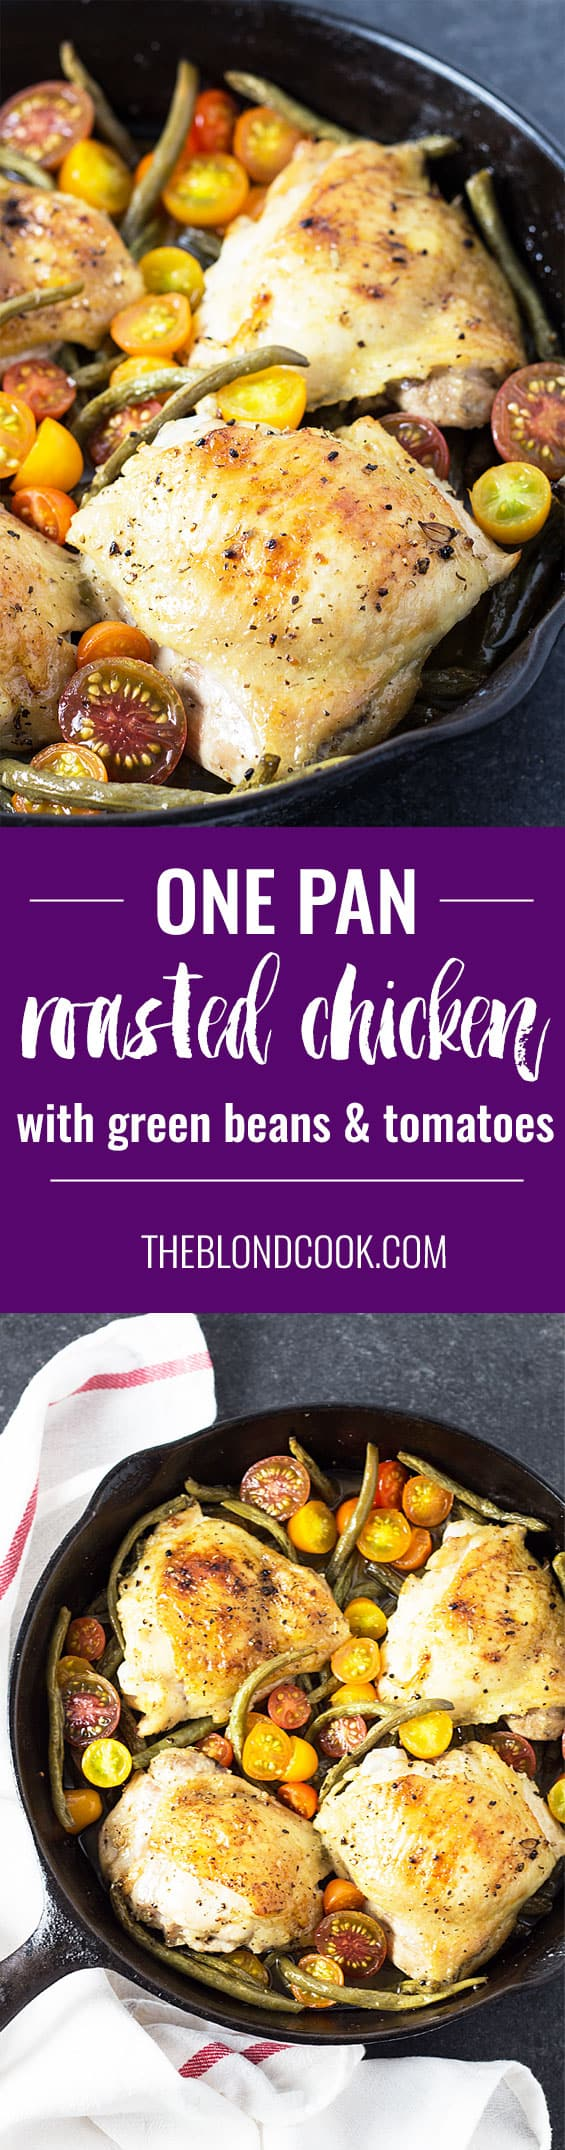 ONE PAN Roasted Chicken with Lemon Herb Green Beans and Tomatoes - Just an hour for the most savory and flavorful low carb chicken dish!